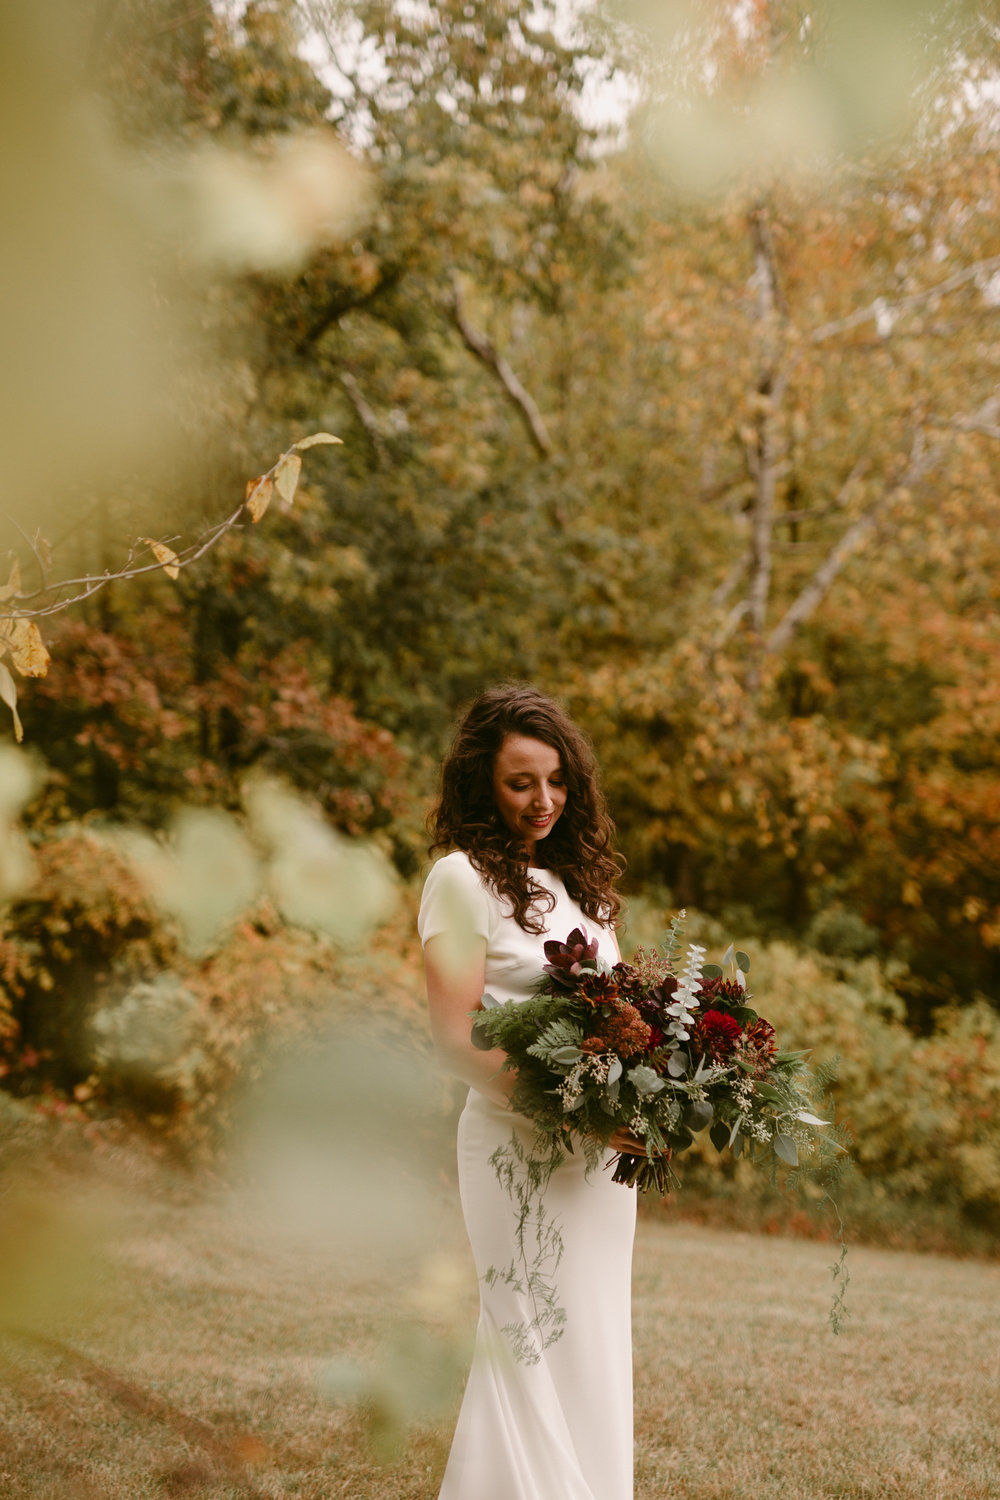 DalbrechtPhotography_EthanEmma_Wedding_Blog-35.jpg